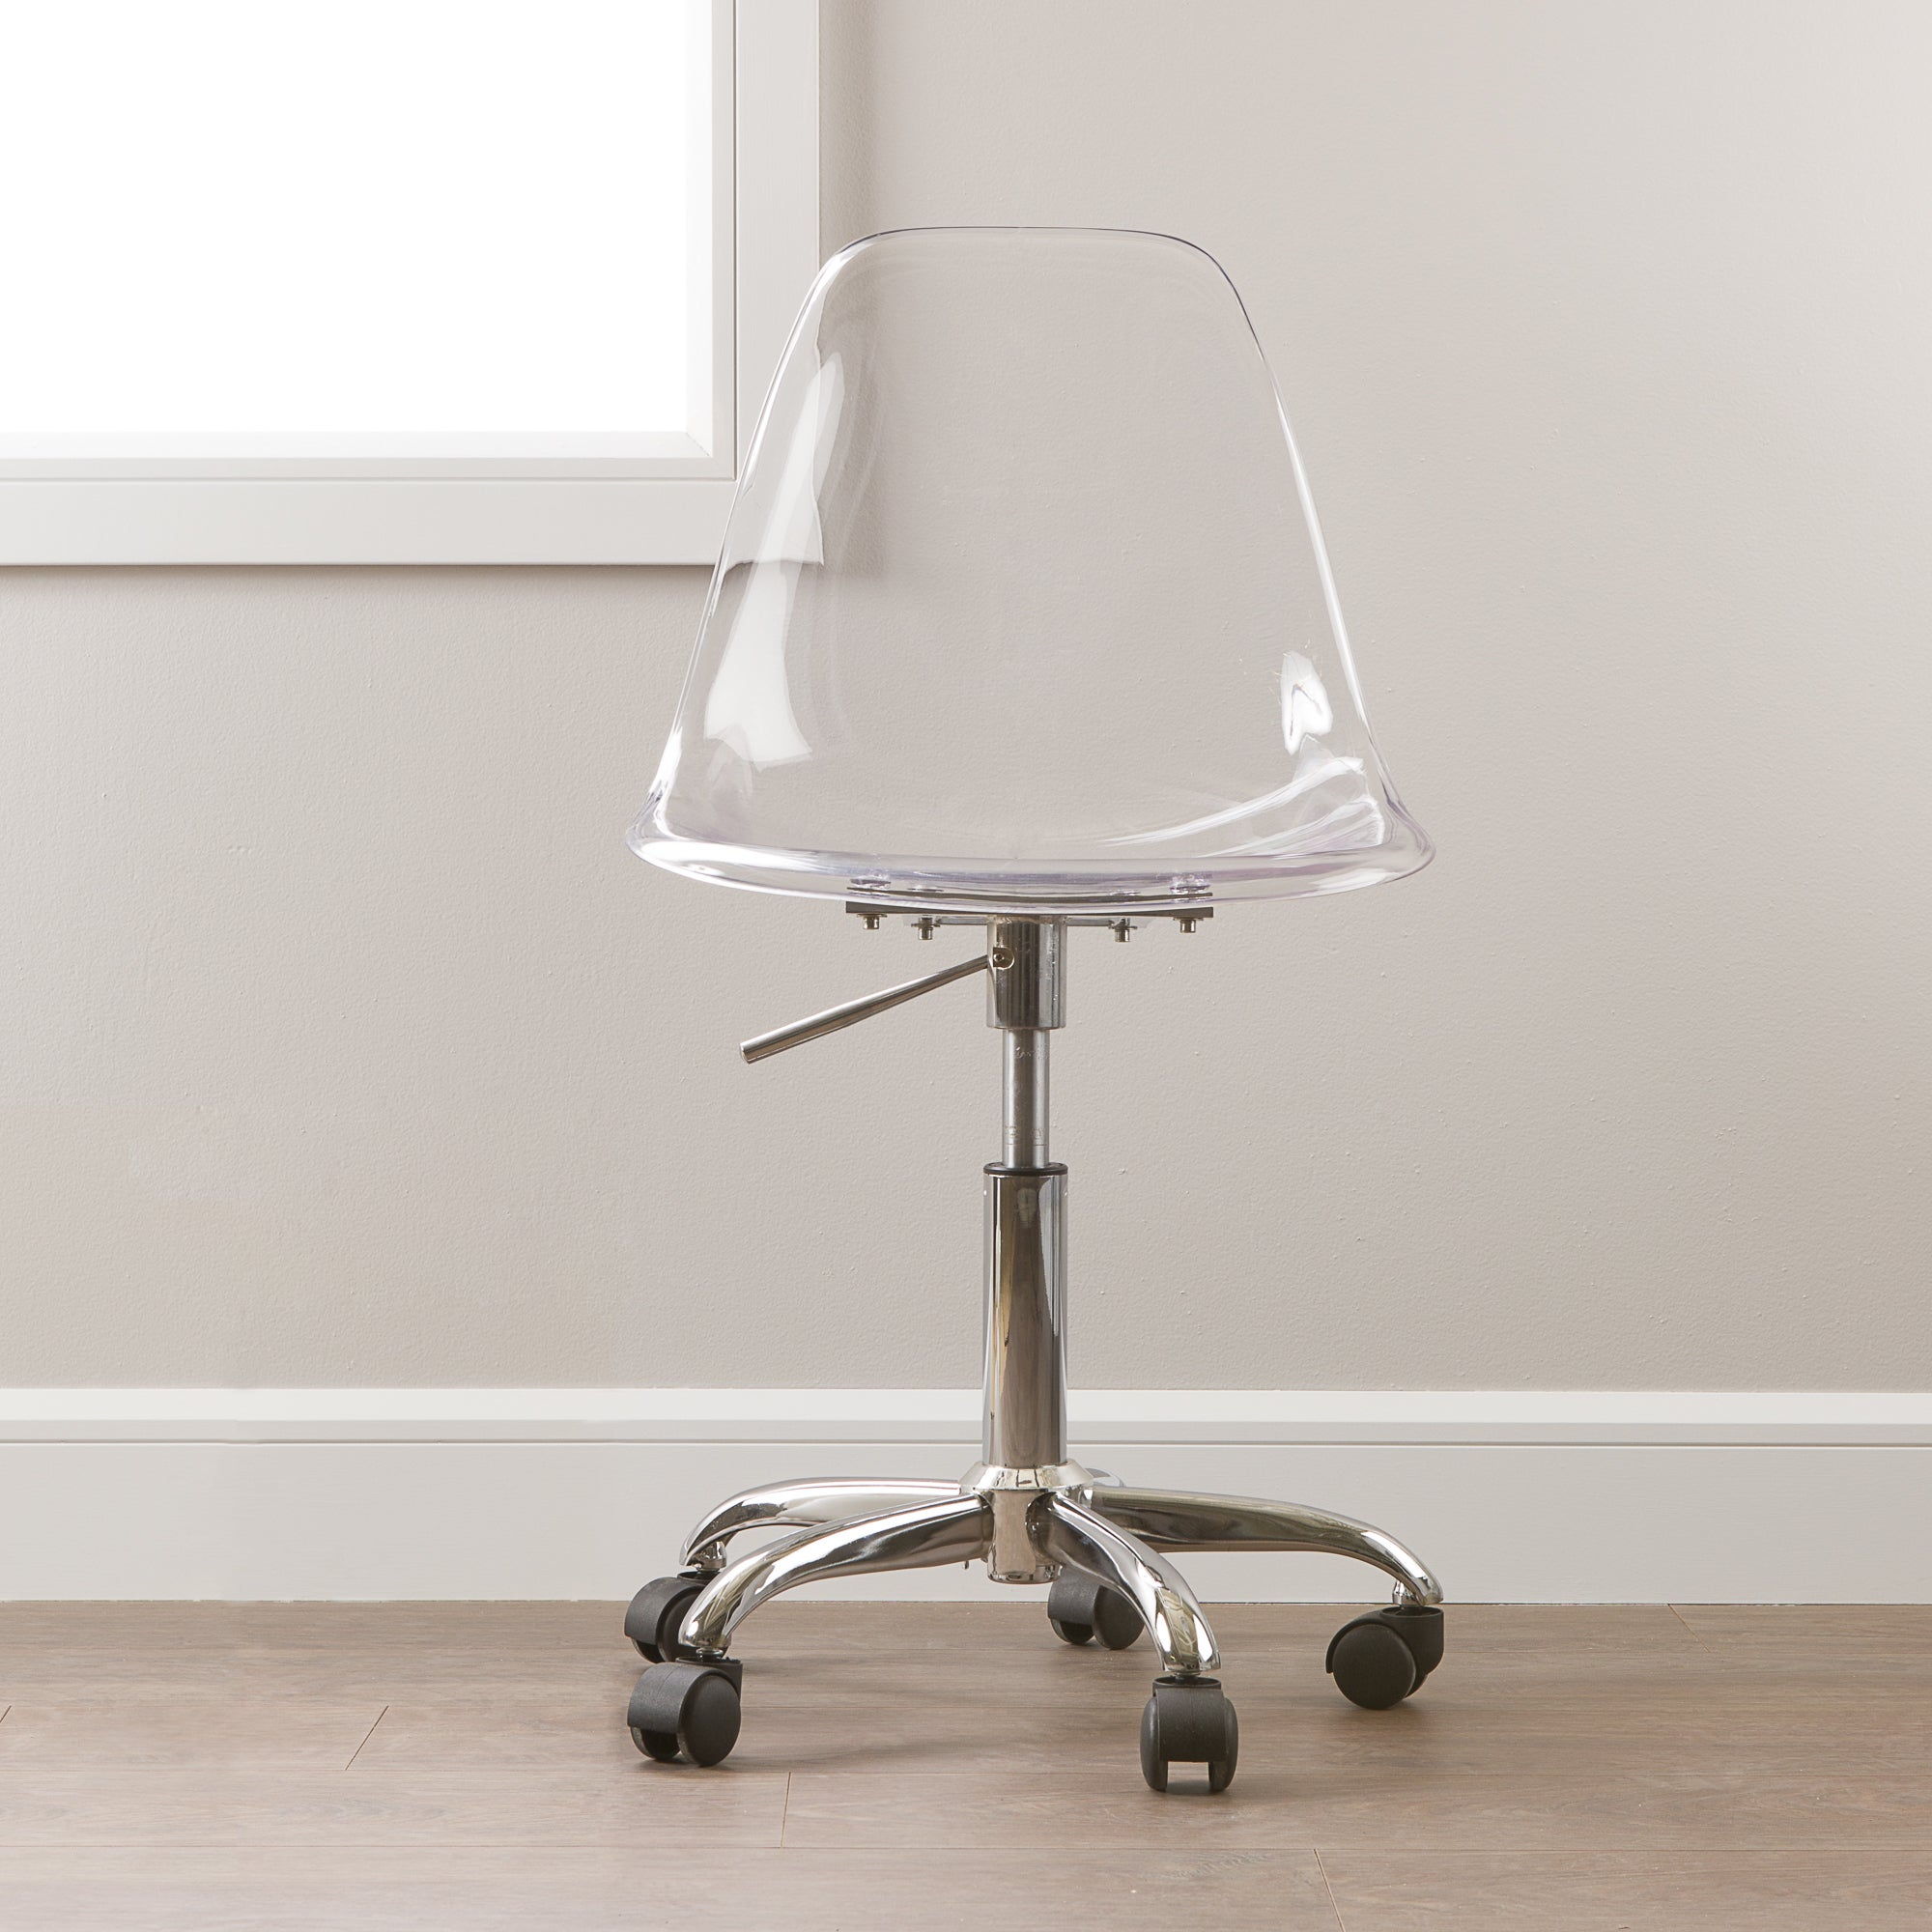 acrylic office chairs. Shop South Shore Furniture Clear Acrylic Wheeled Office Chair - Ships To  Canada Overstock.ca 11468395 Acrylic Office Chairs